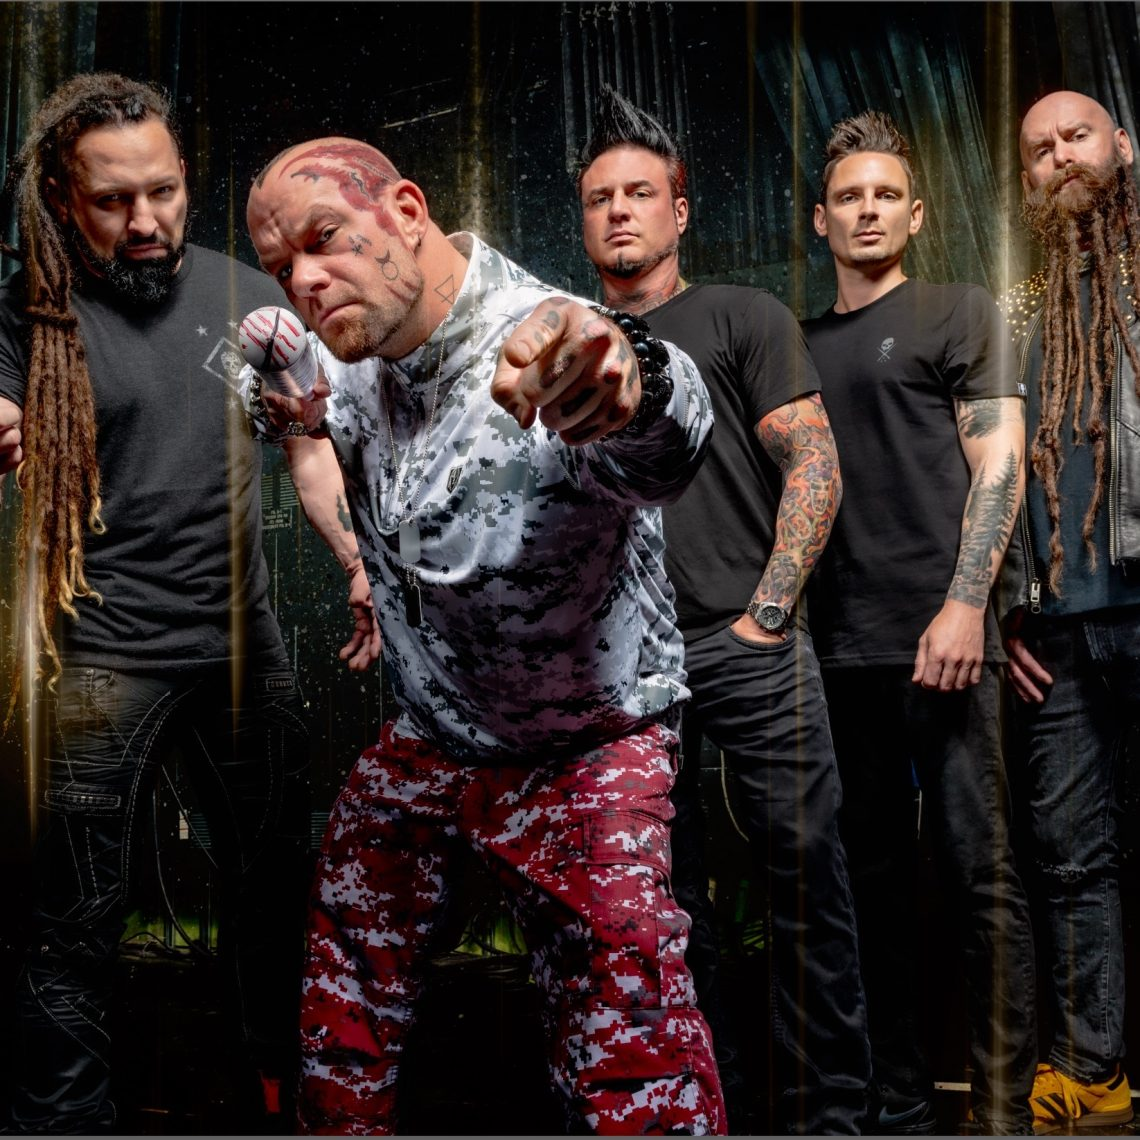 FIVE FINGER DEATH PUNCH A DECADE OF DESTRUCTION – VOLUME 2  NOW AVAILABLE FOR PRE-ORDER ON CD, ORANGE, WHITE AND PURPLE VINYL